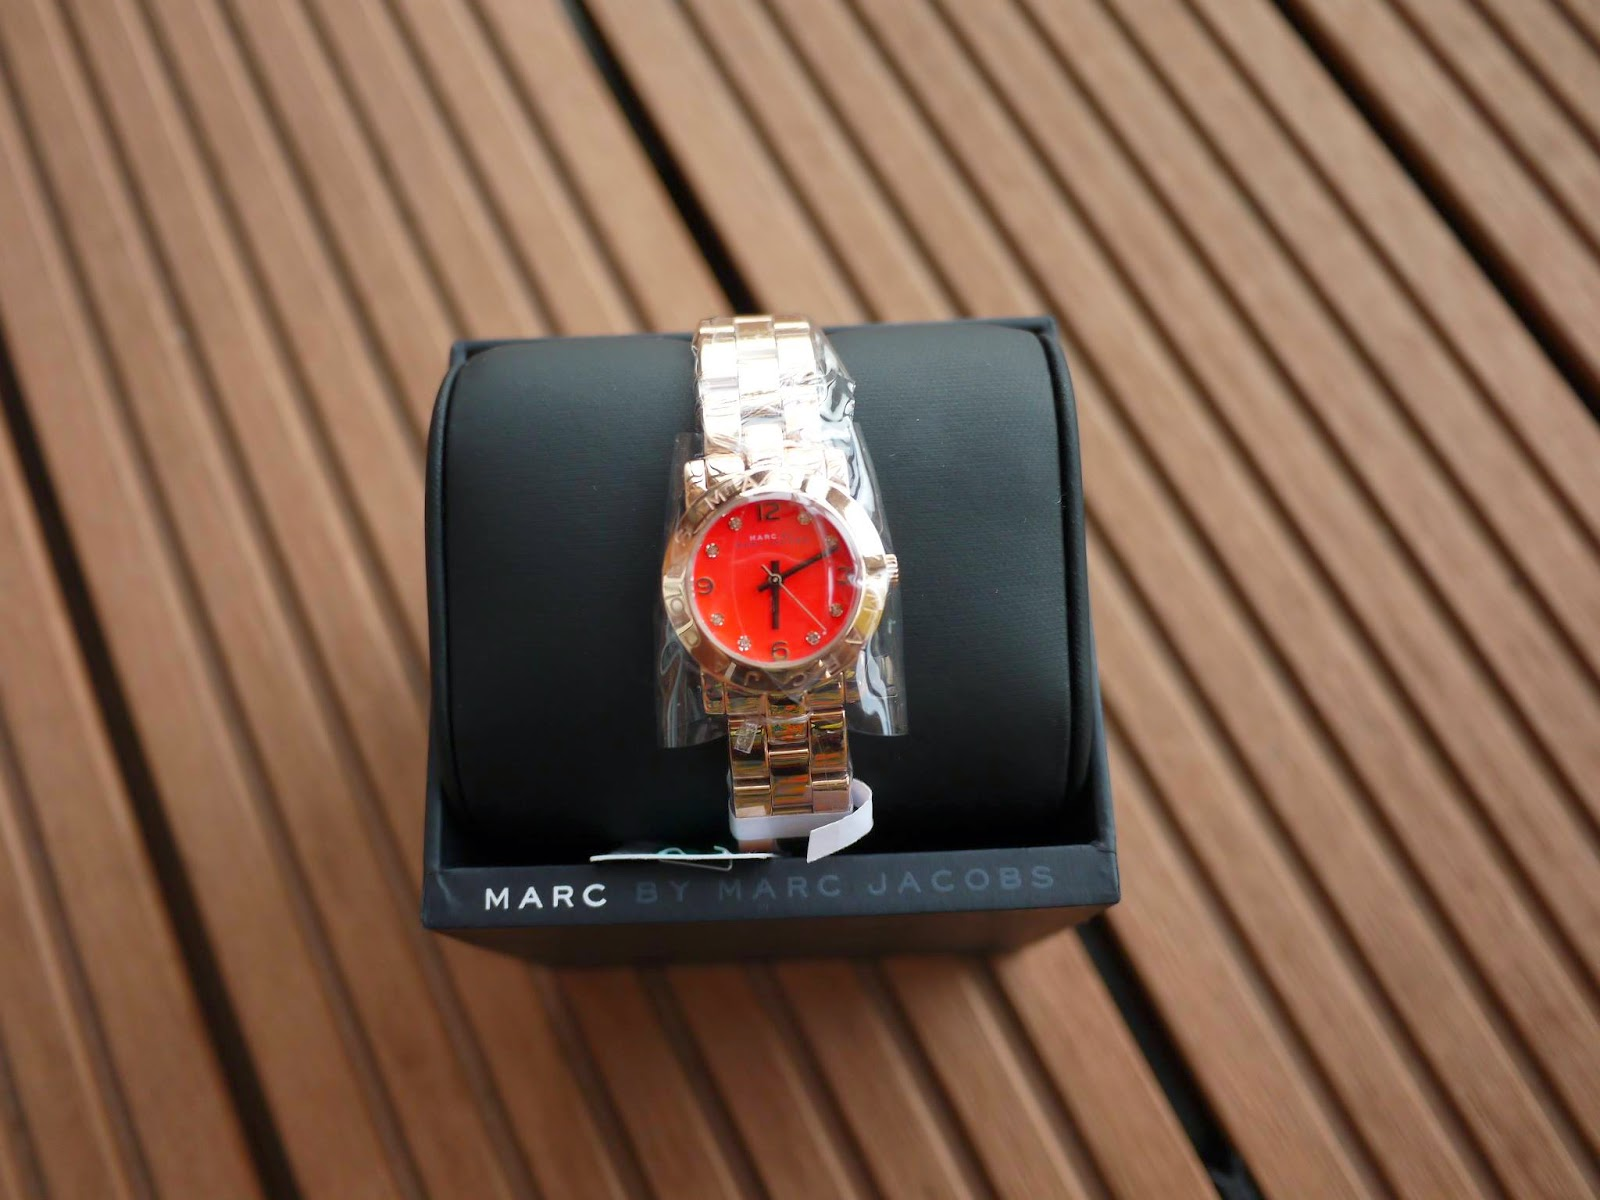 e93298e9a (Sold) Marc Jacobs Pink Gold Crystal Watch